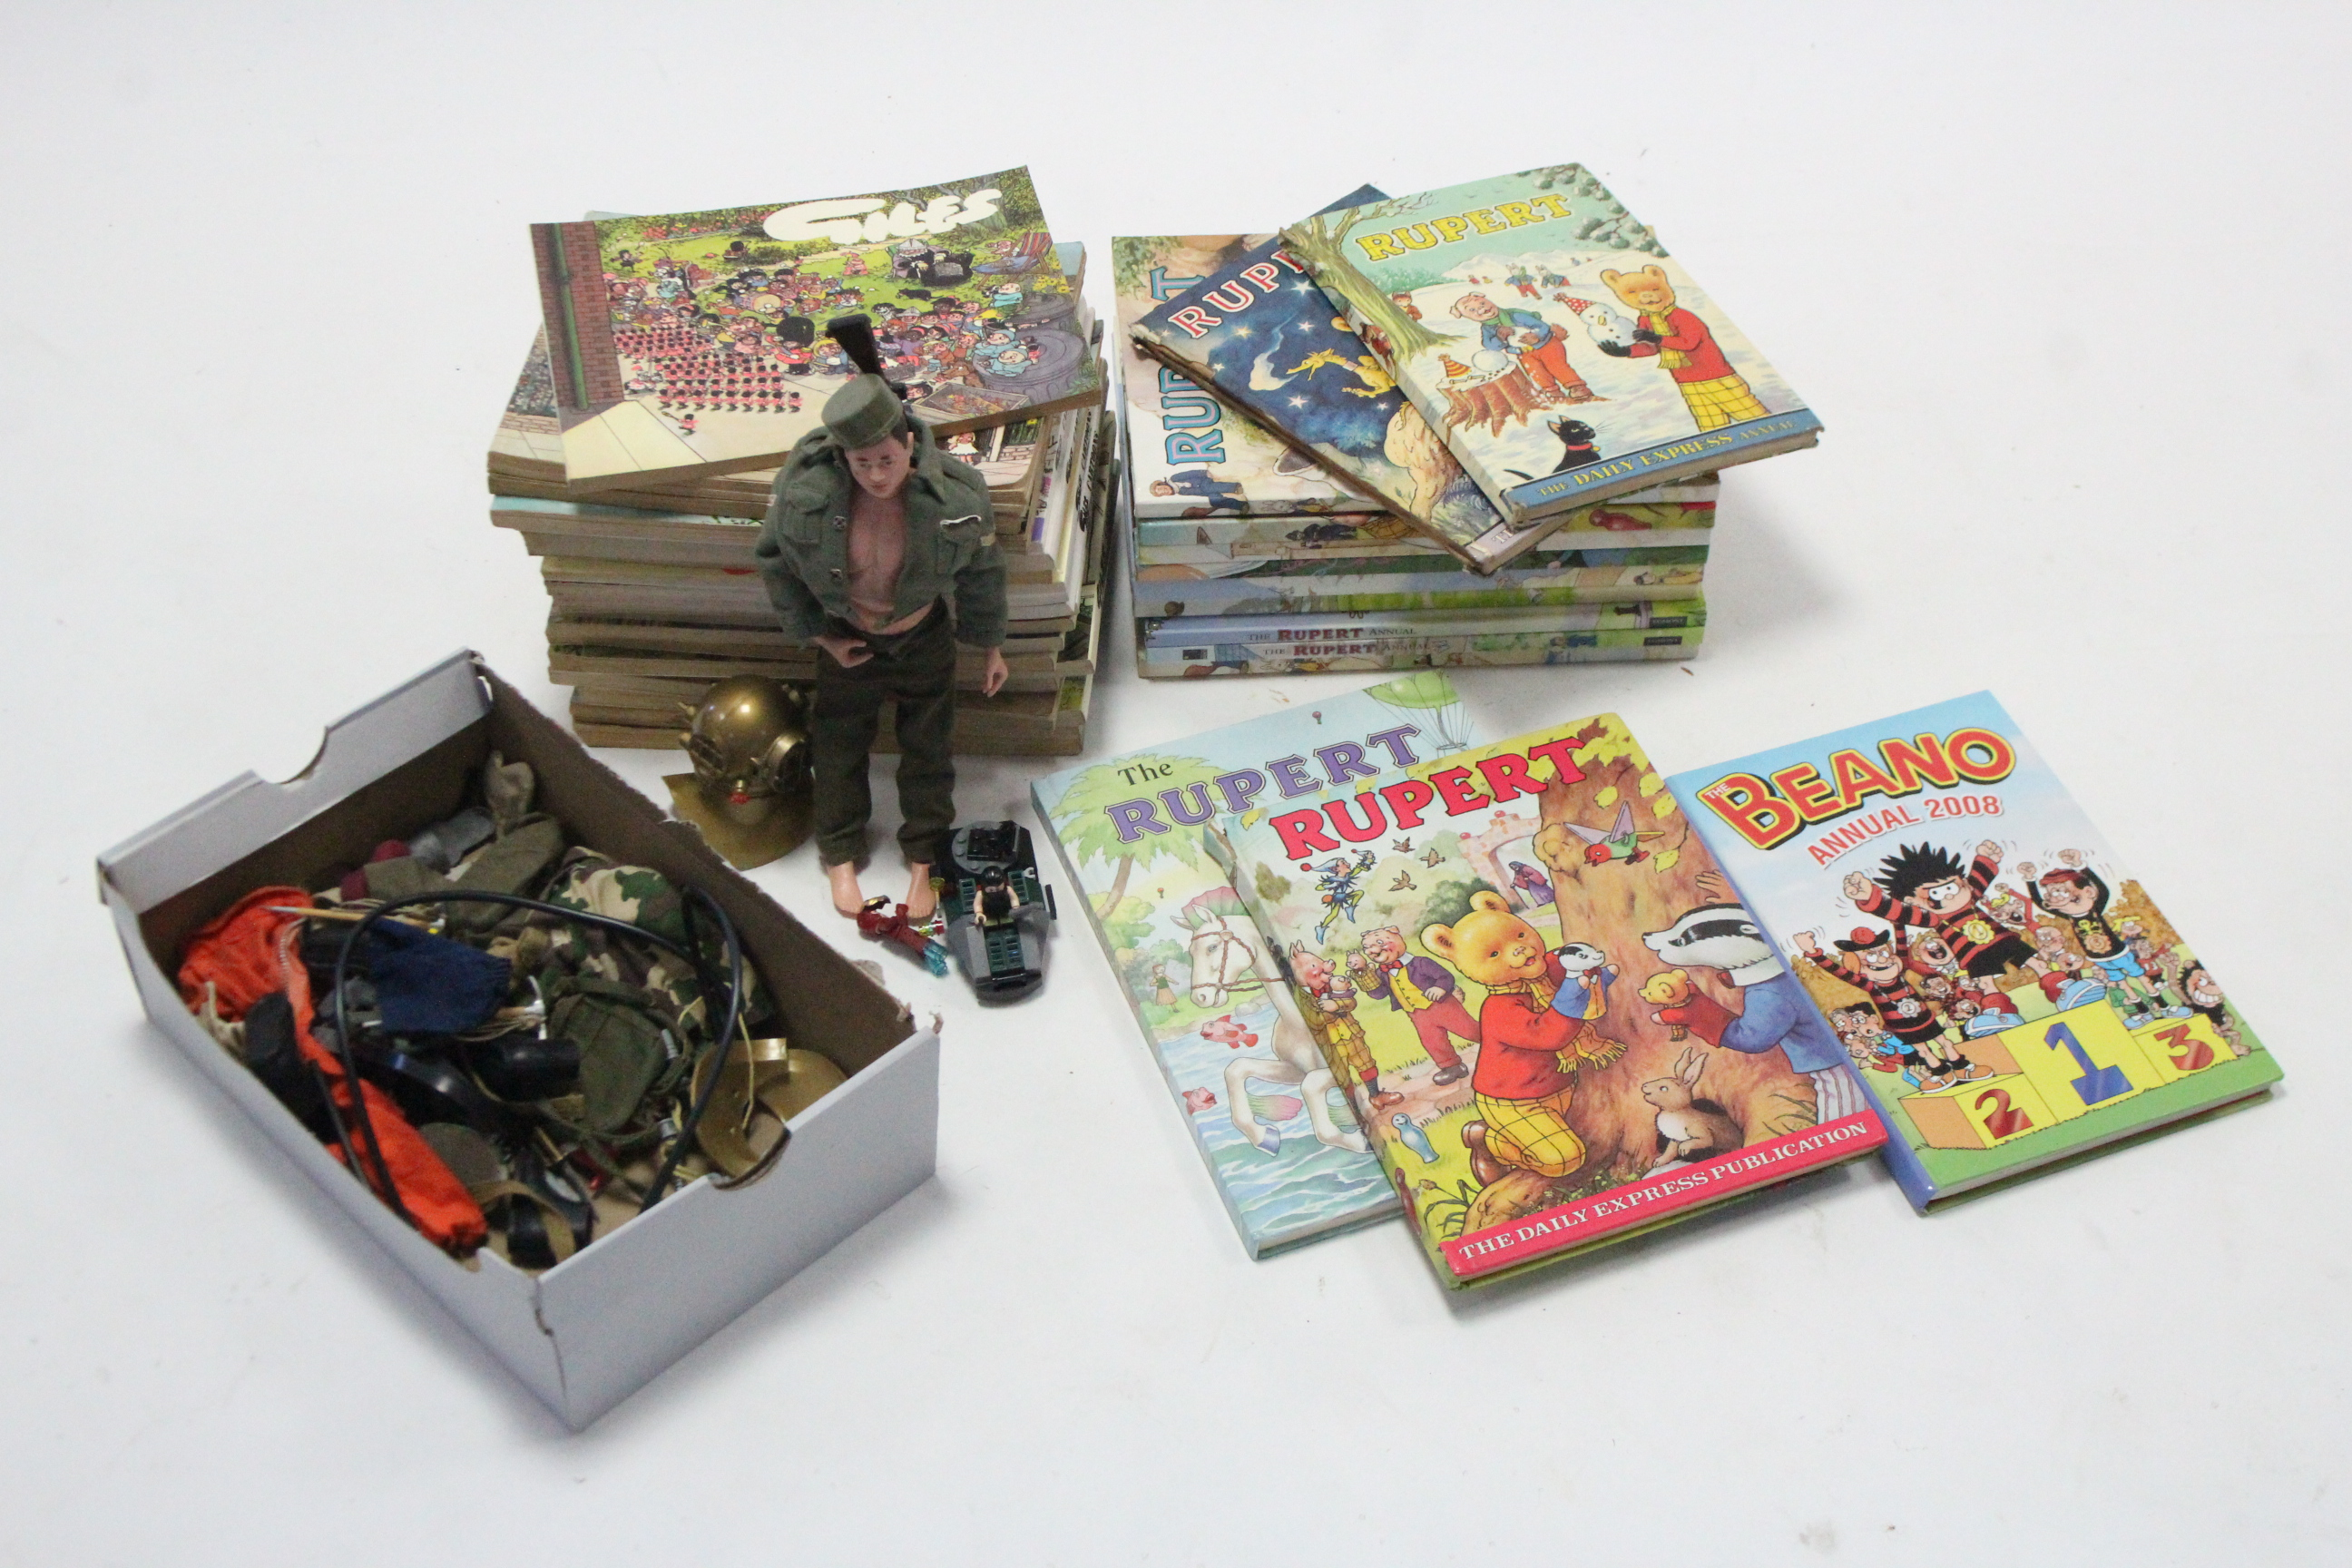 A Palitoy (1964) Action Man figure; various Action Man accessories; & various books & children's